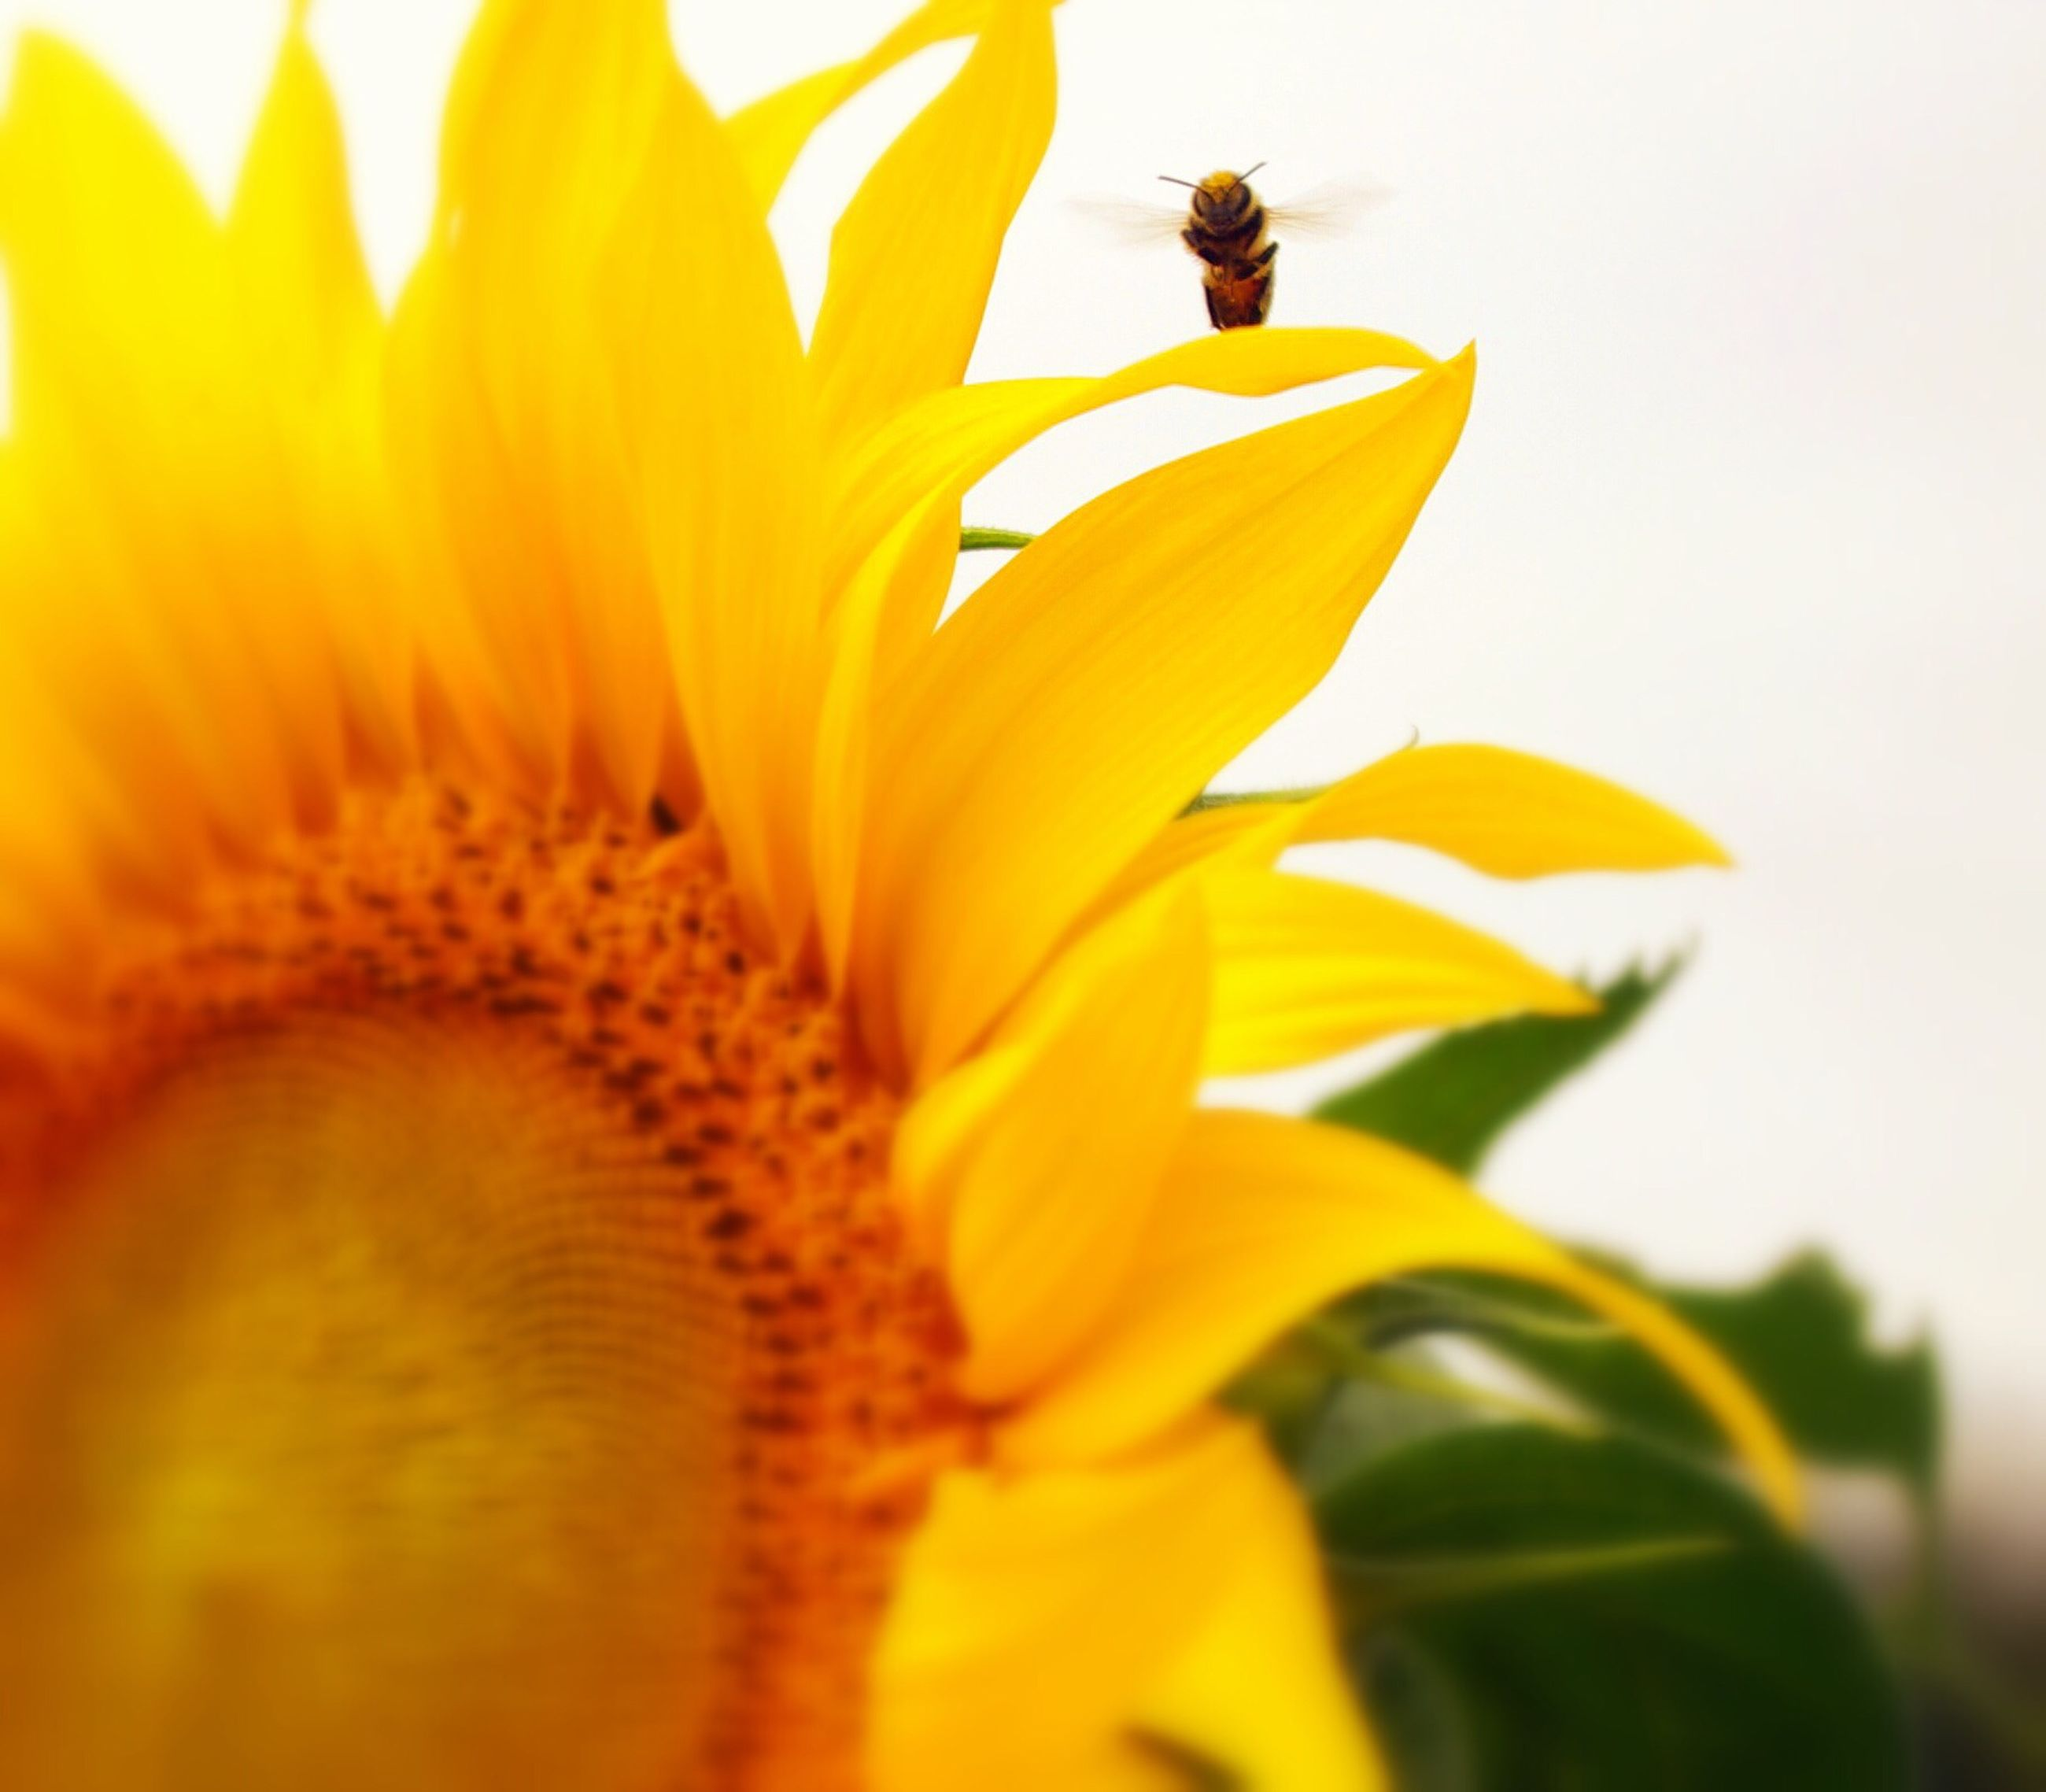 flower, petal, yellow, freshness, flower head, fragility, growth, beauty in nature, sunflower, close-up, pollen, nature, blooming, single flower, focus on foreground, plant, in bloom, selective focus, stamen, botany